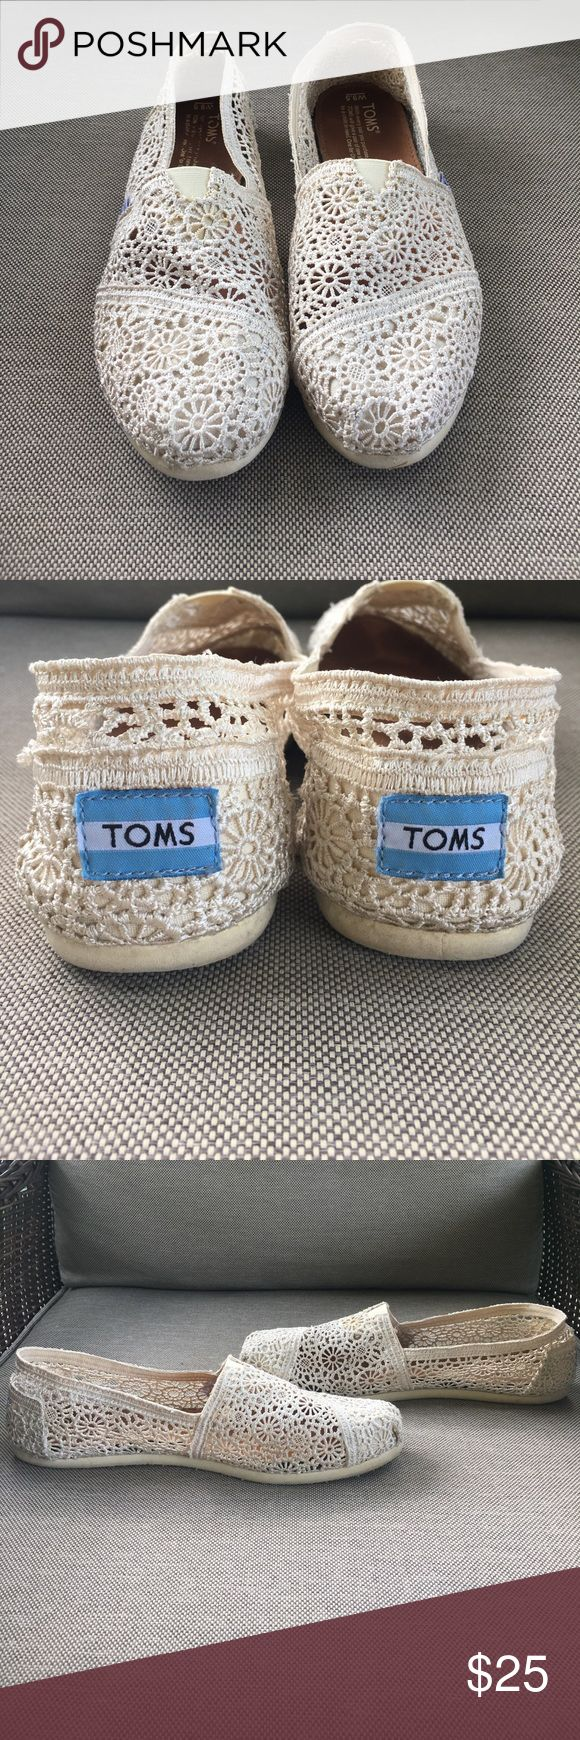 Cream lace Toms, size 9 1/2 These laced Toms are in great shape and are just as comfortable! Toms Shoes Flats & Loafers